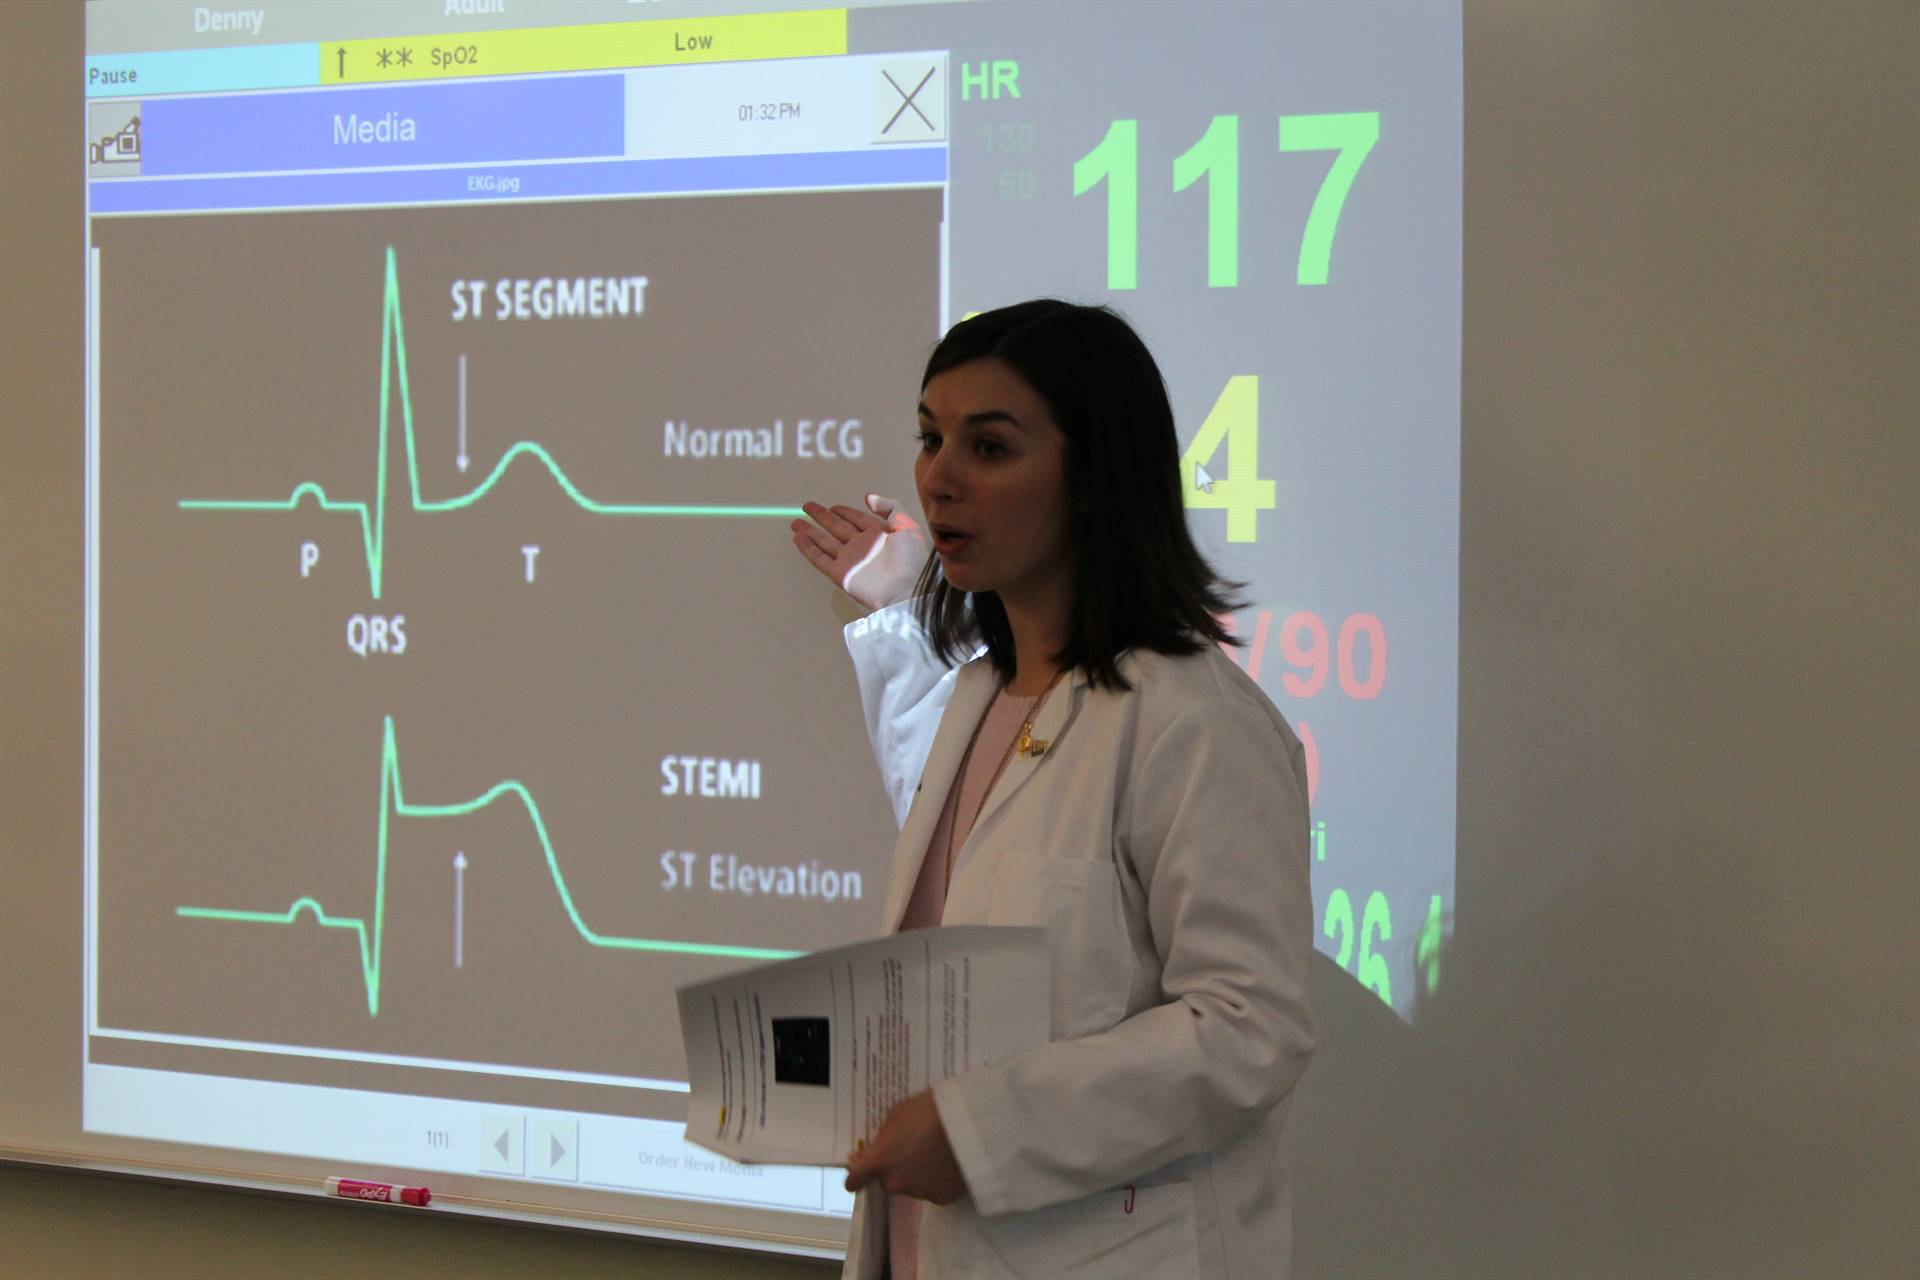 Learning how to read an EKG